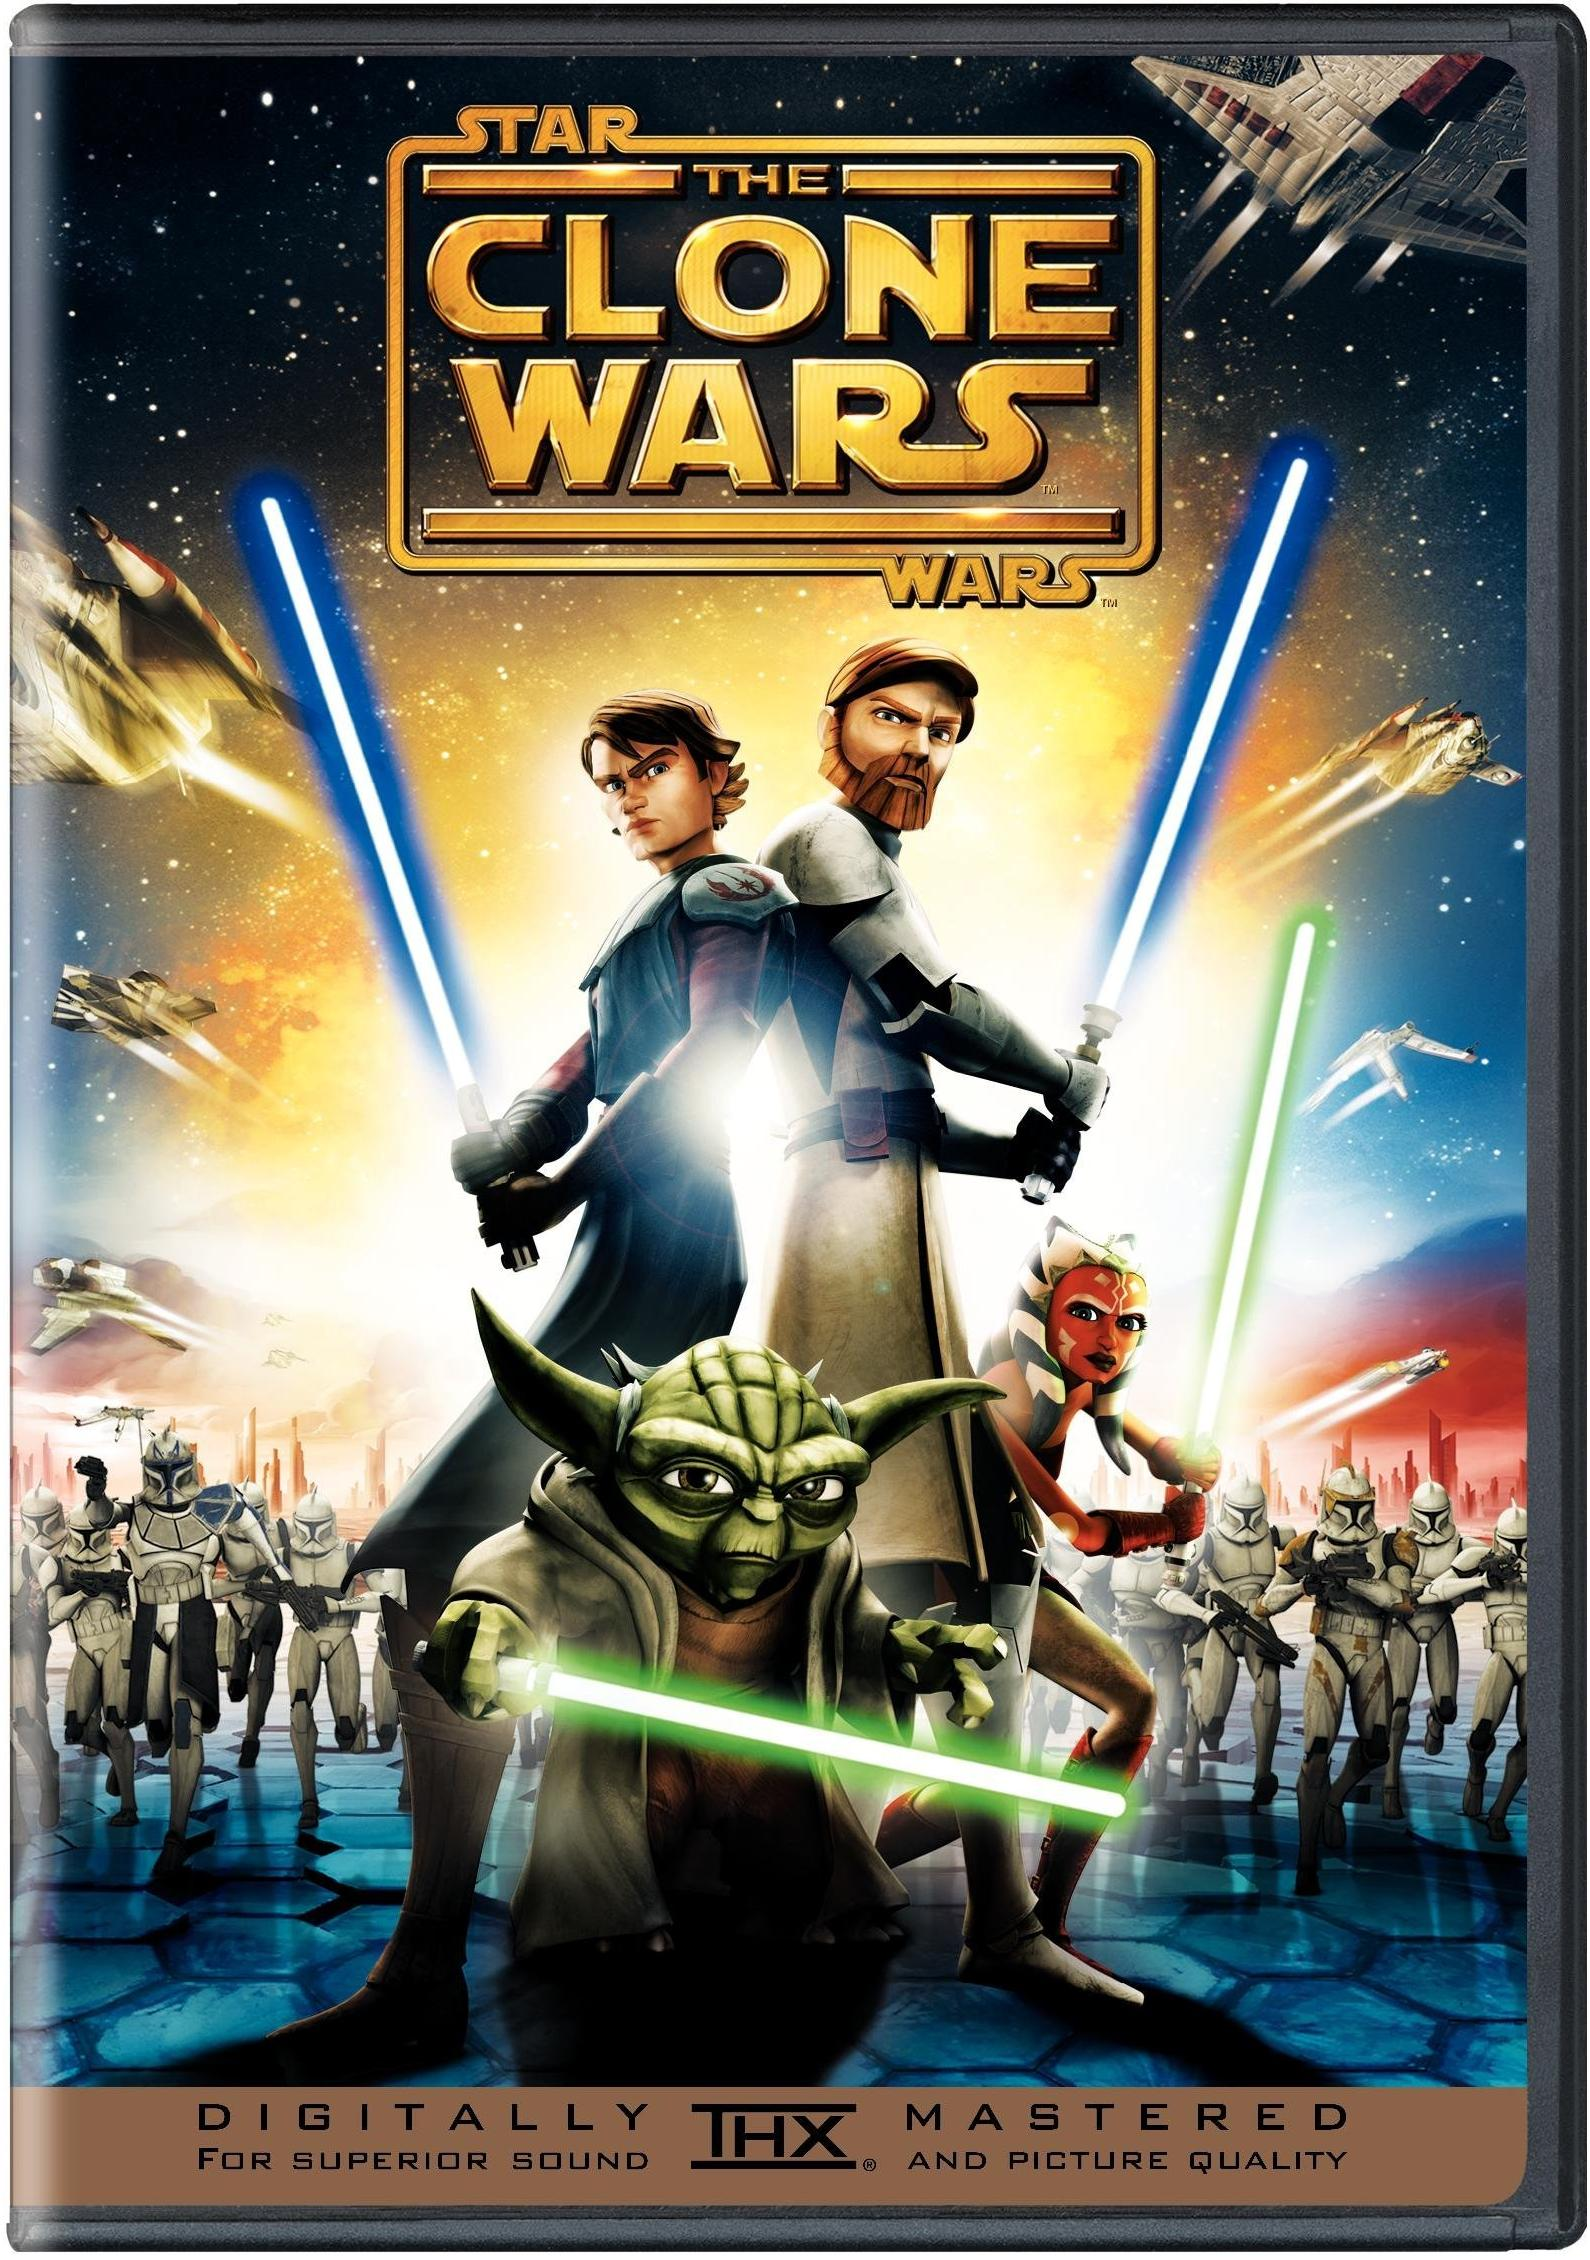 Star Wars: The Clone Wars The Bad Batch S.7.E.5